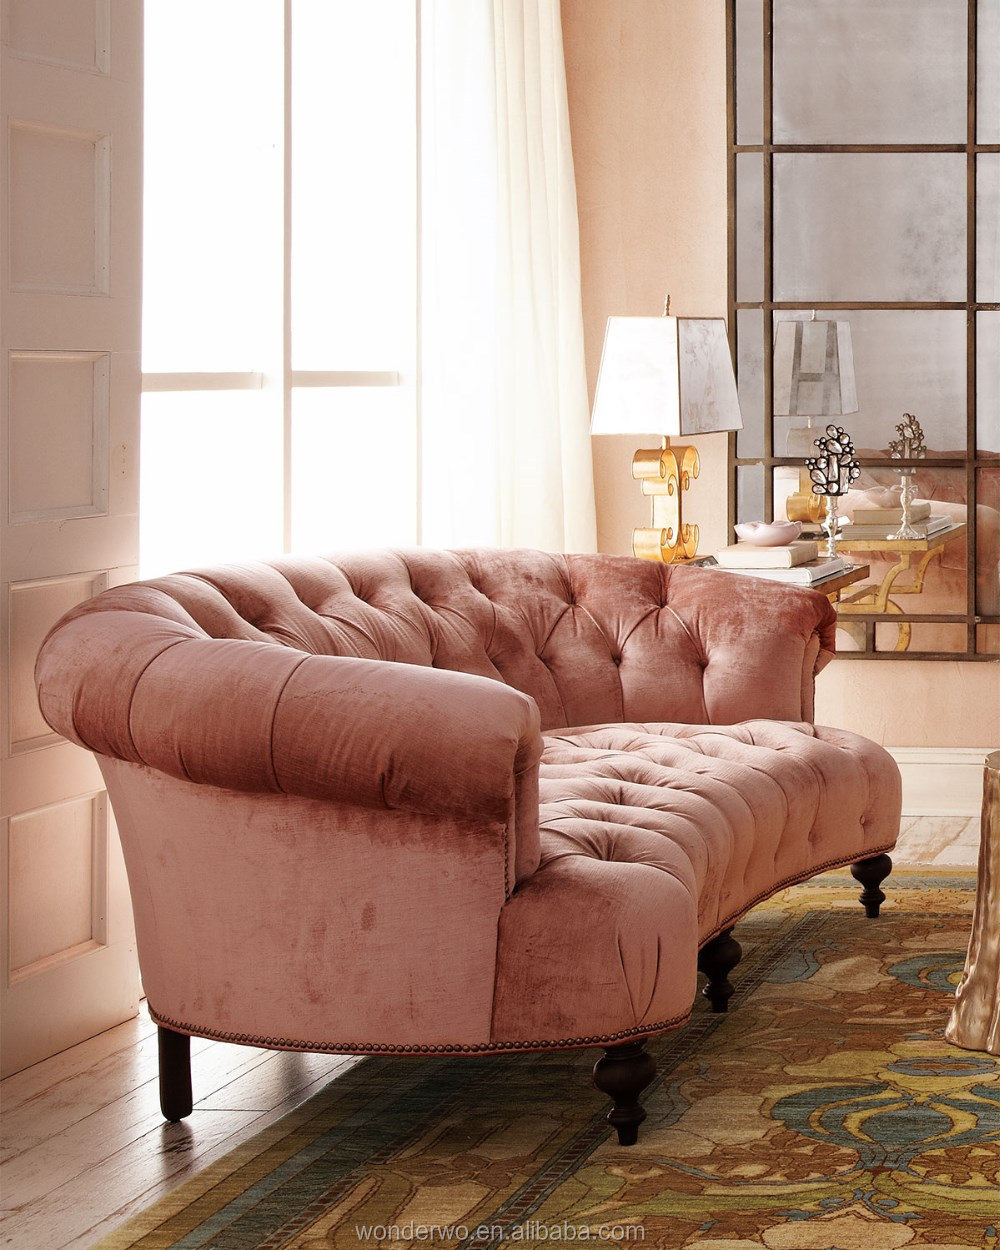 Clic Hollywood Style Blush Velvet Tufted Sofa Curves Cozy Couch Living Room Furniture